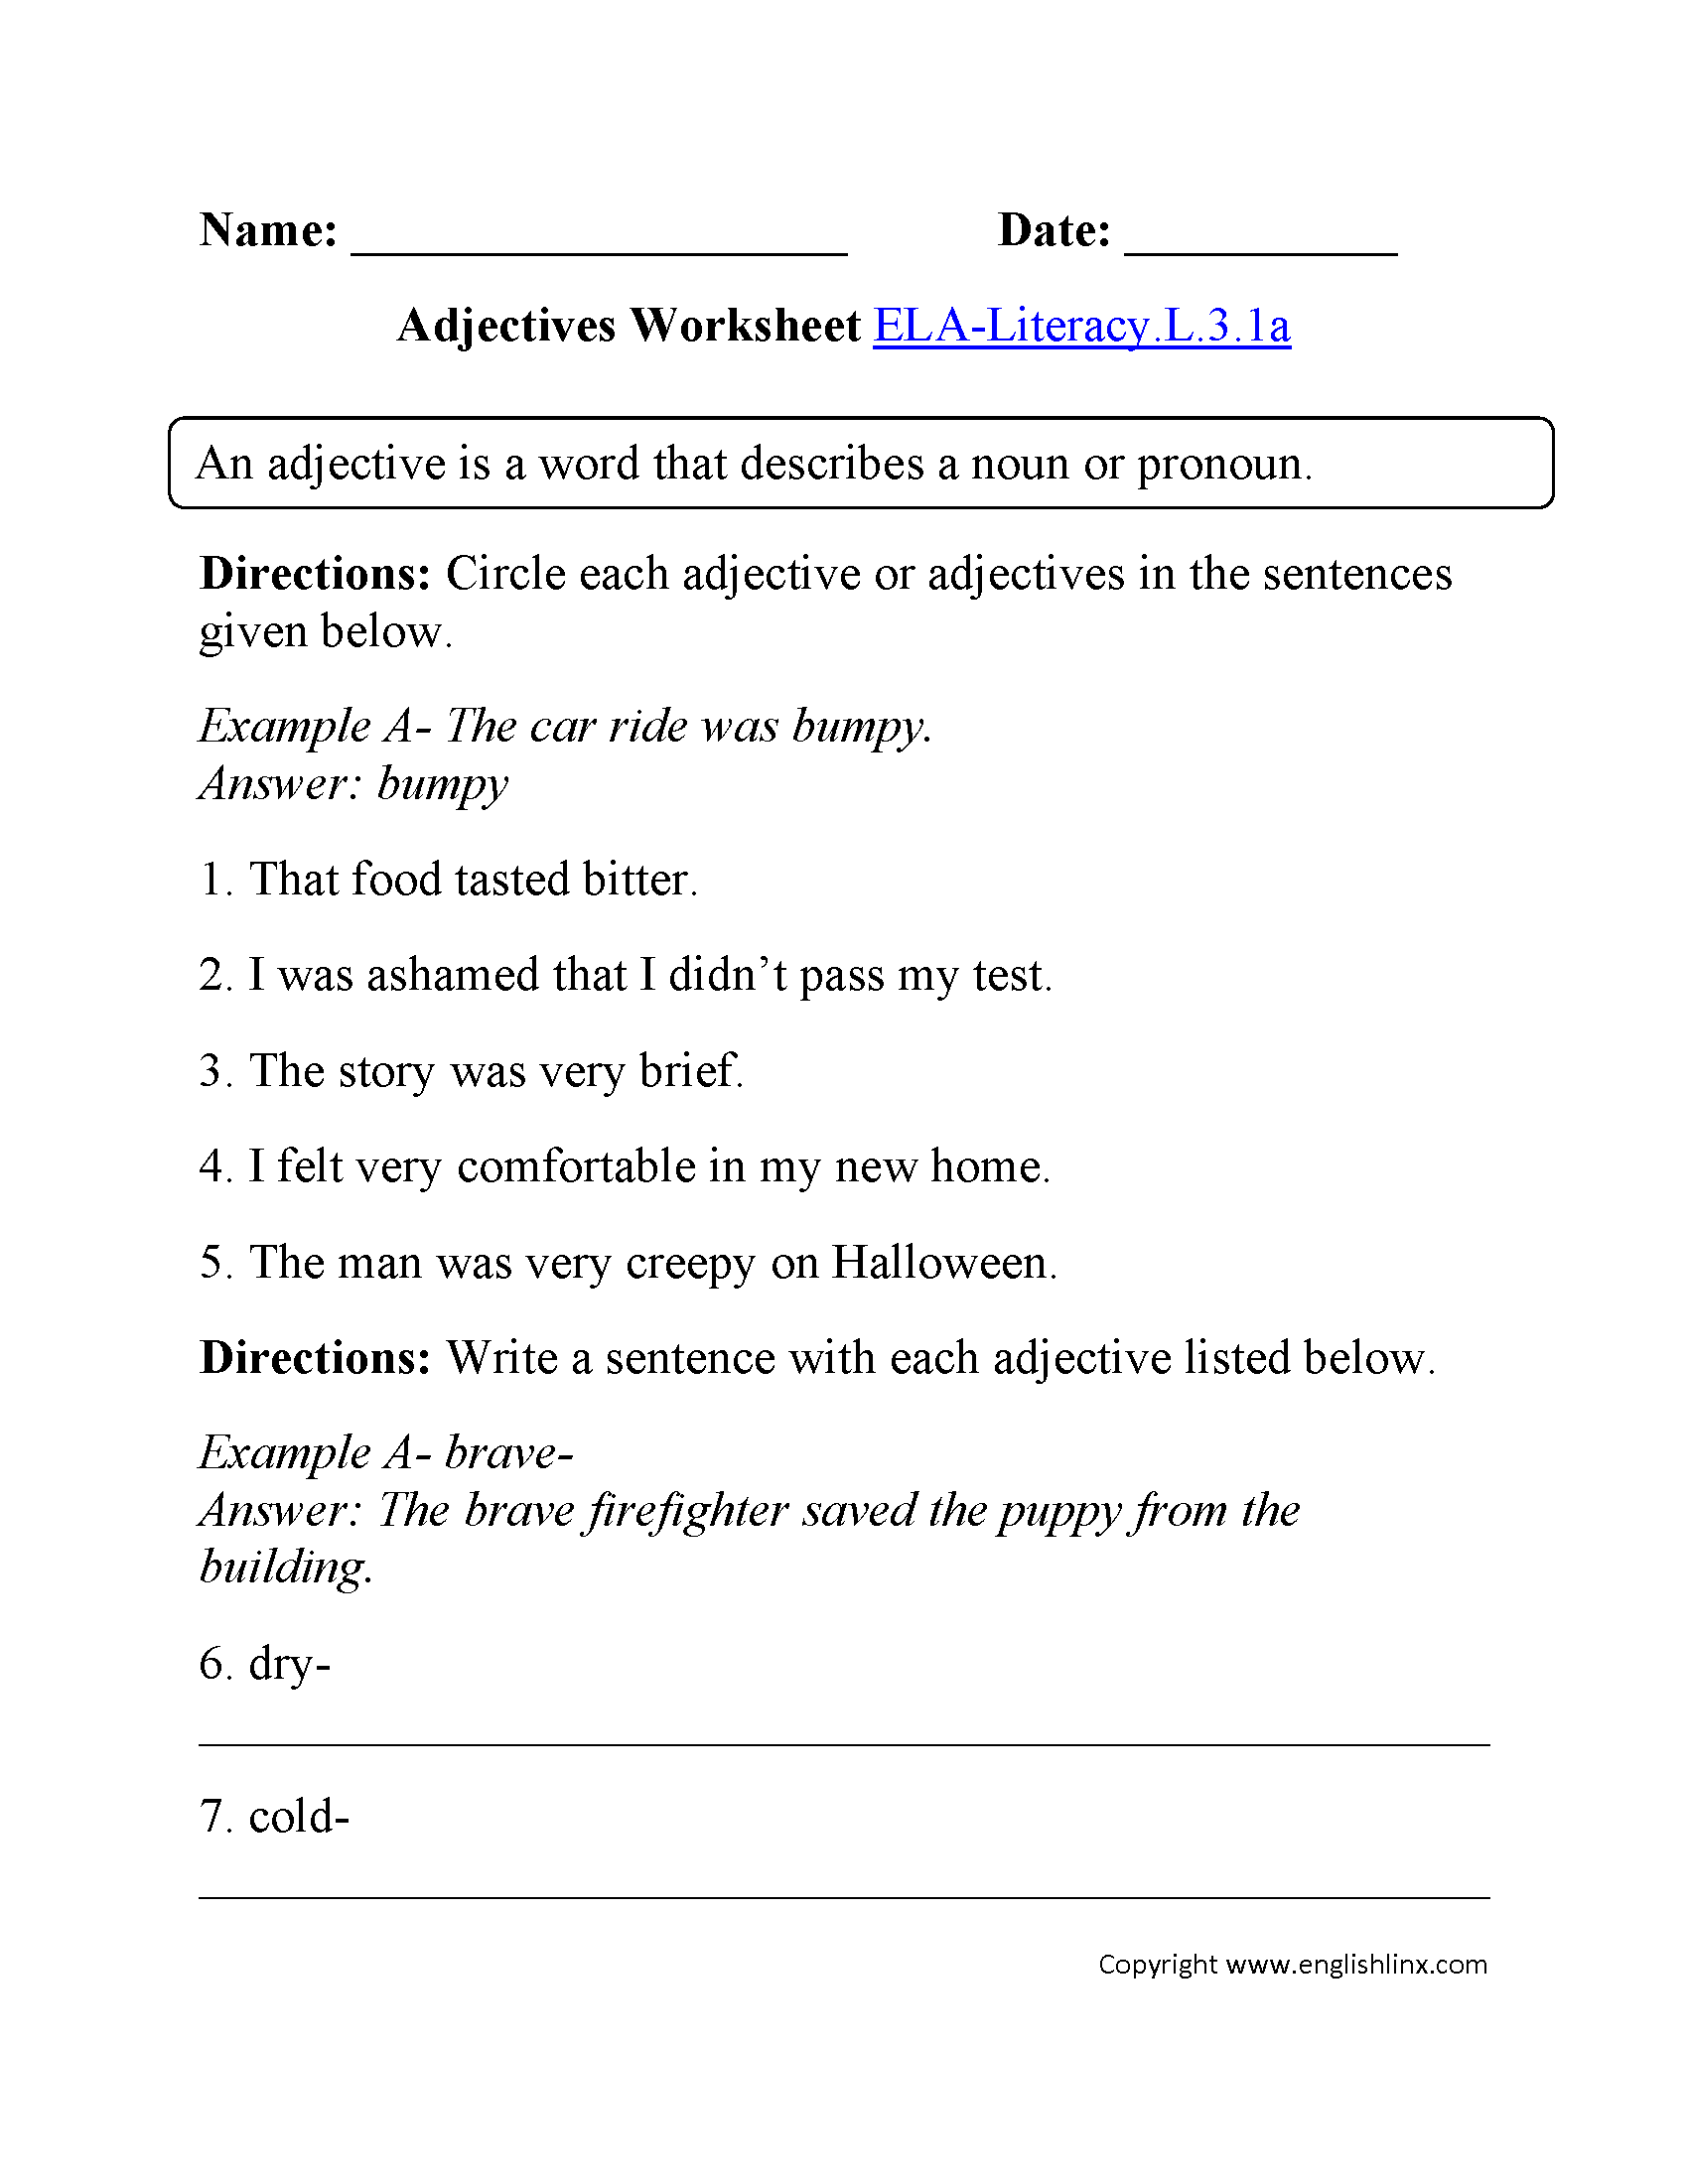 Worksheet Adjectives Worksheet For 3rd Grade 3rd grade common core language worksheets adjectives worksheet 2 ela literacy l 3 1a worksheet